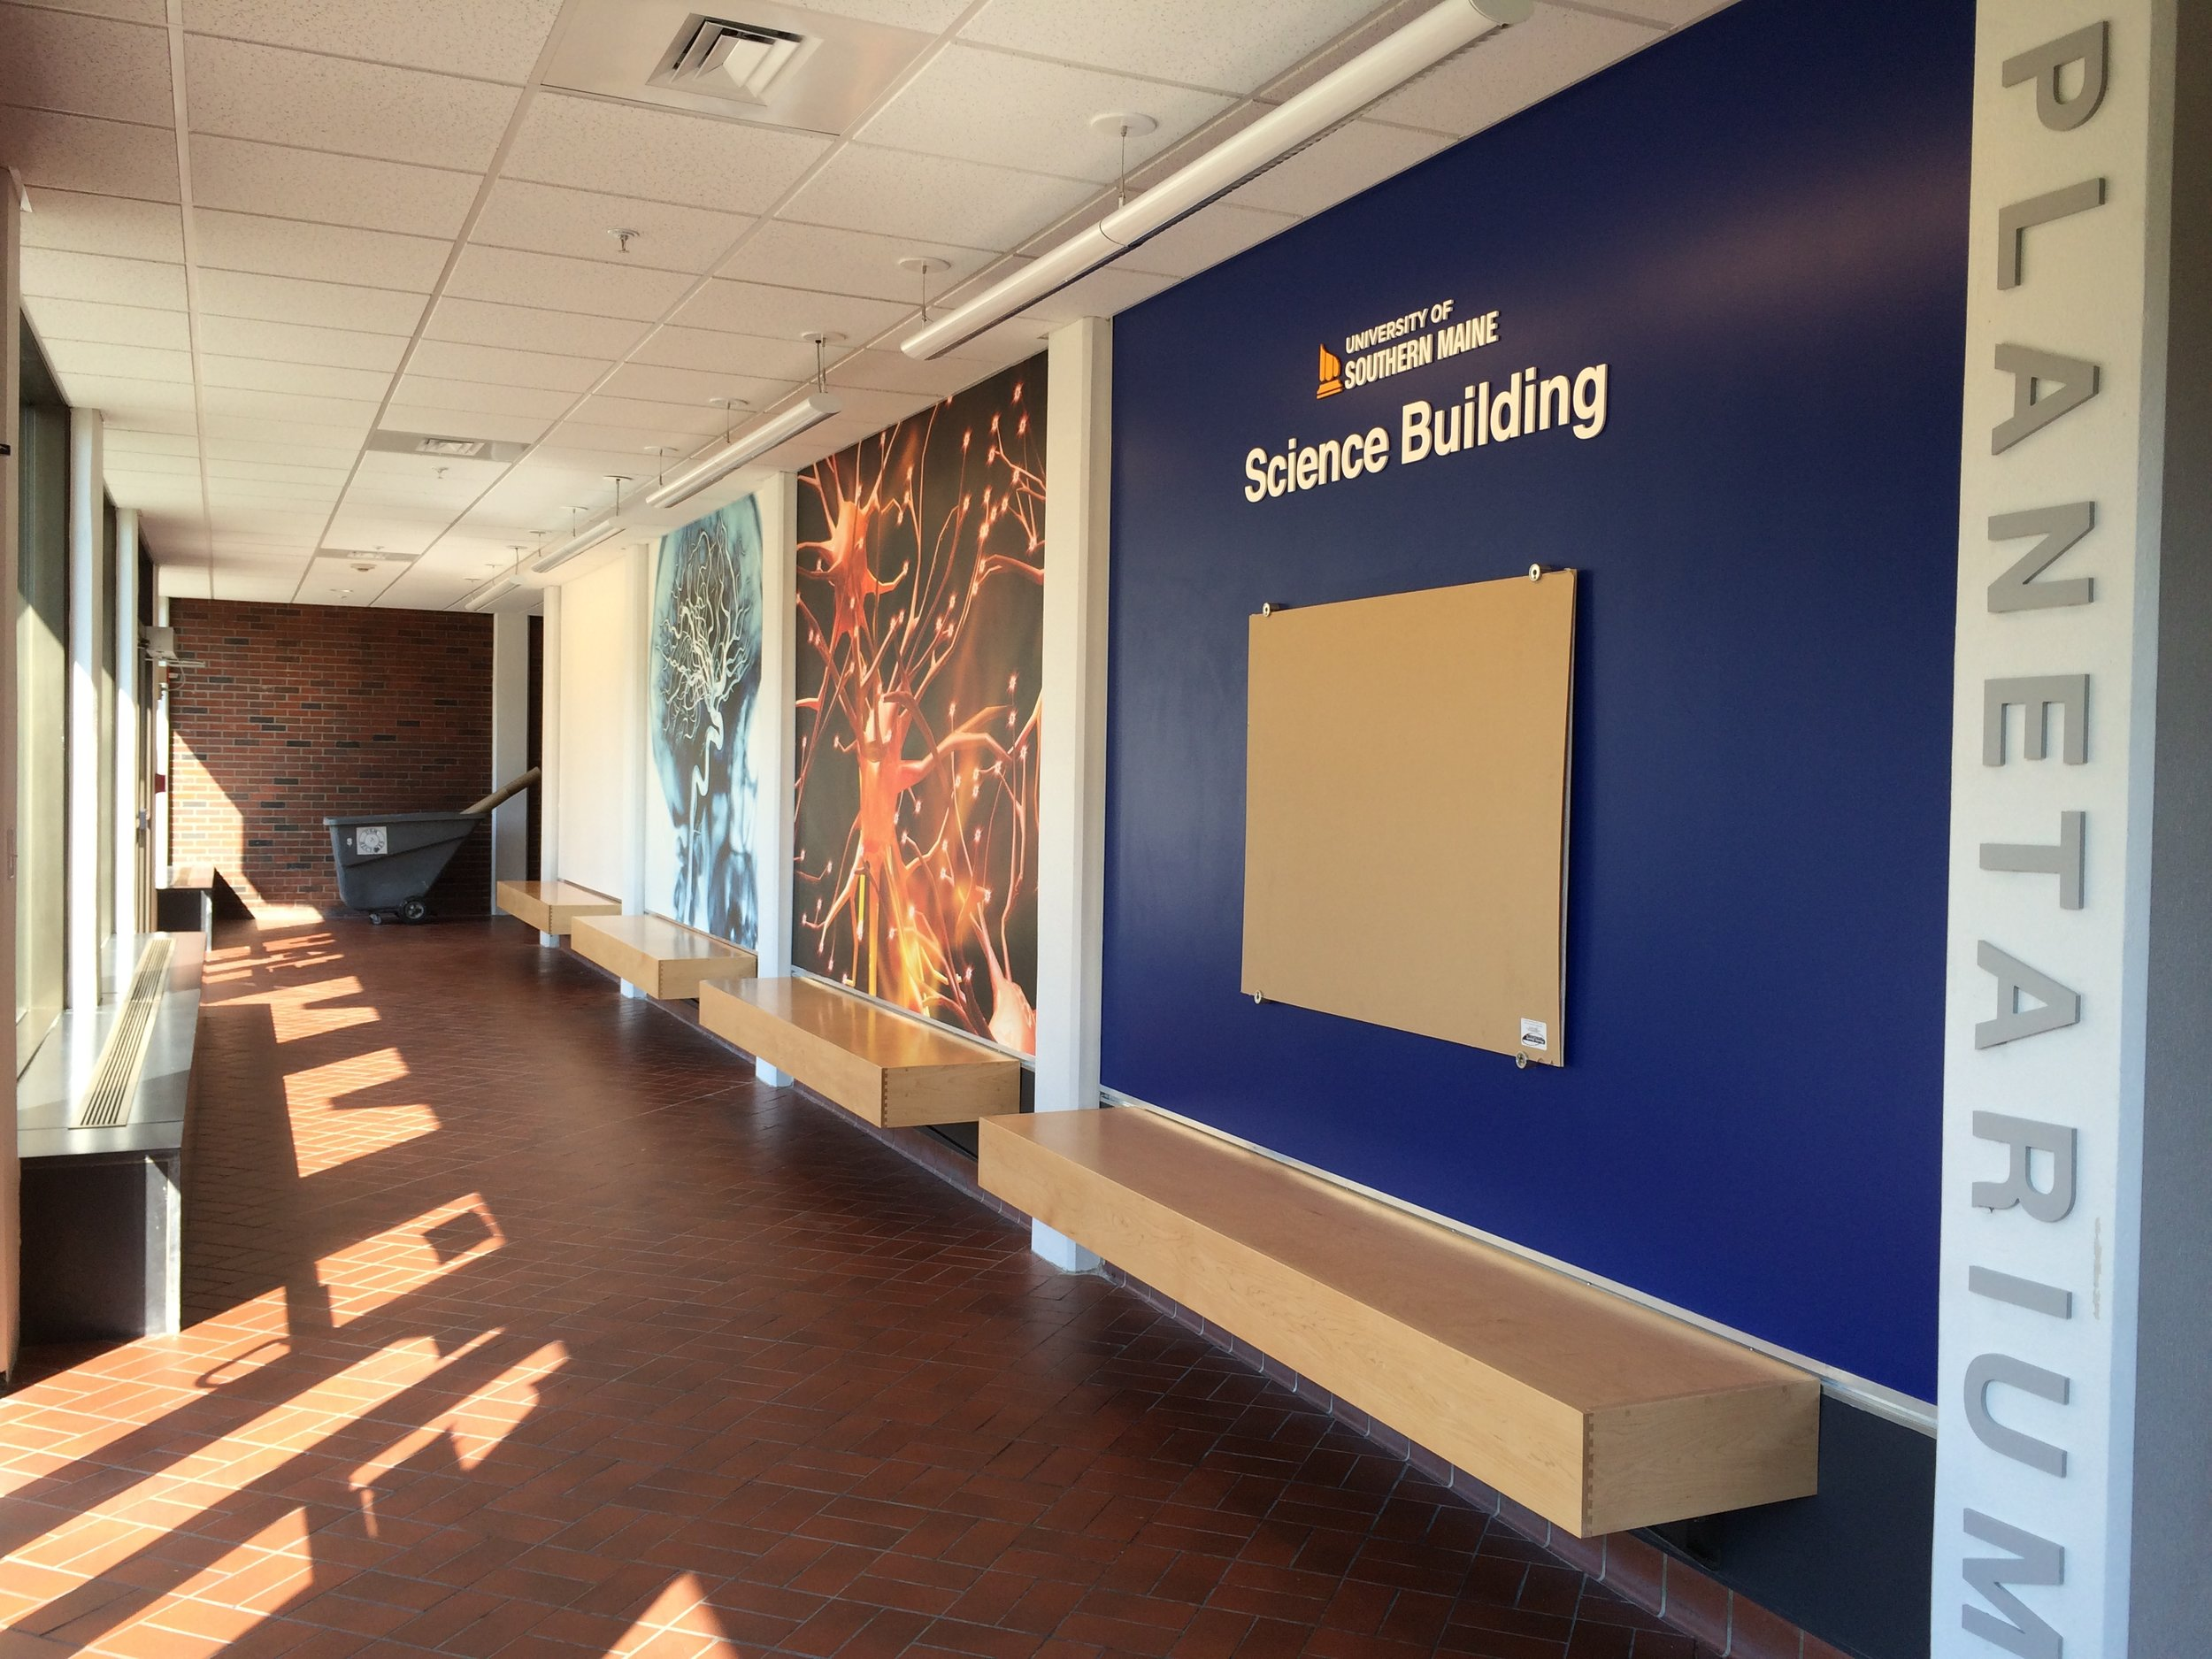 Intensely colorful and detailed images captivate school groups on their way downstairs to the Southworth Planetarium.